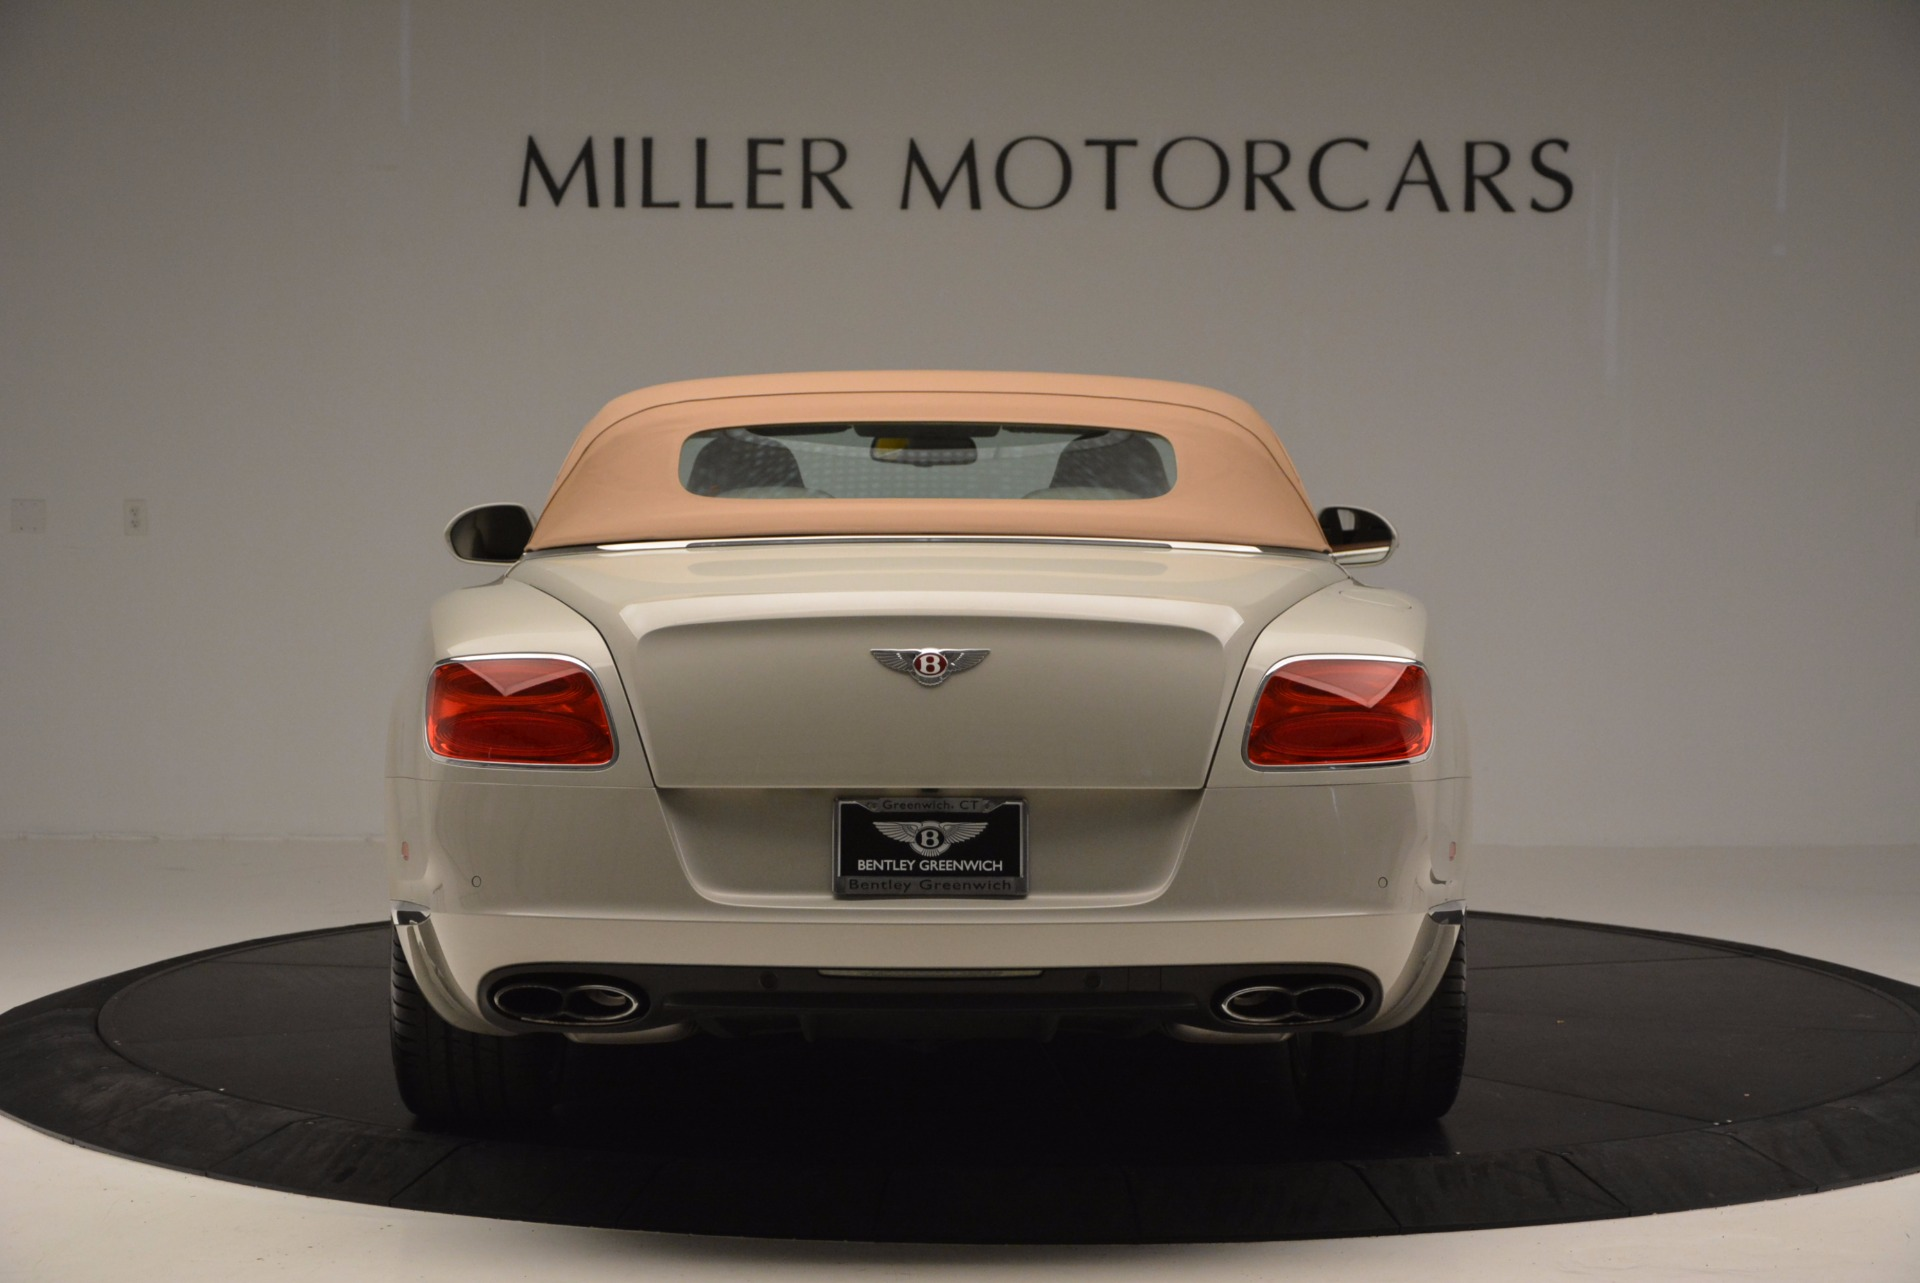 Used 2013 Bentley Continental GTC V8  For Sale In Greenwich, CT. Alfa Romeo of Greenwich, 7108 675_p19